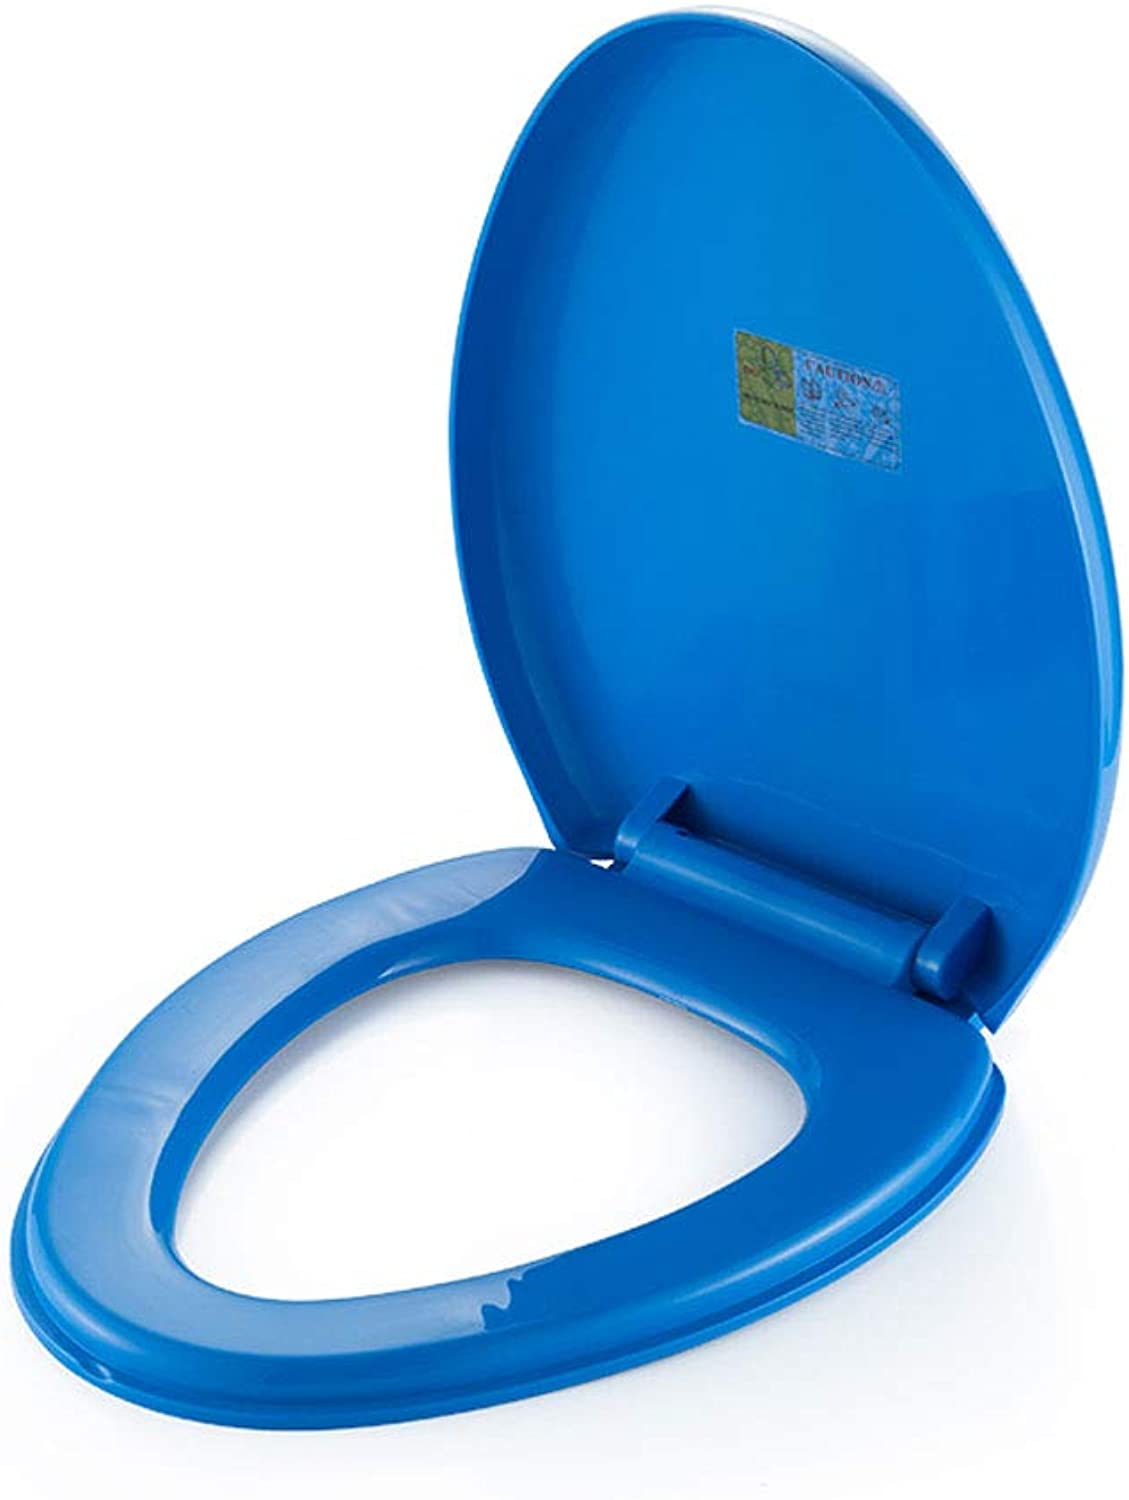 KR Thick General Purpose U Type Toilet Lid Tops color Toilet Toilet Cover Quick Release Toilet Lid Old Fashioned Accessories,bluee